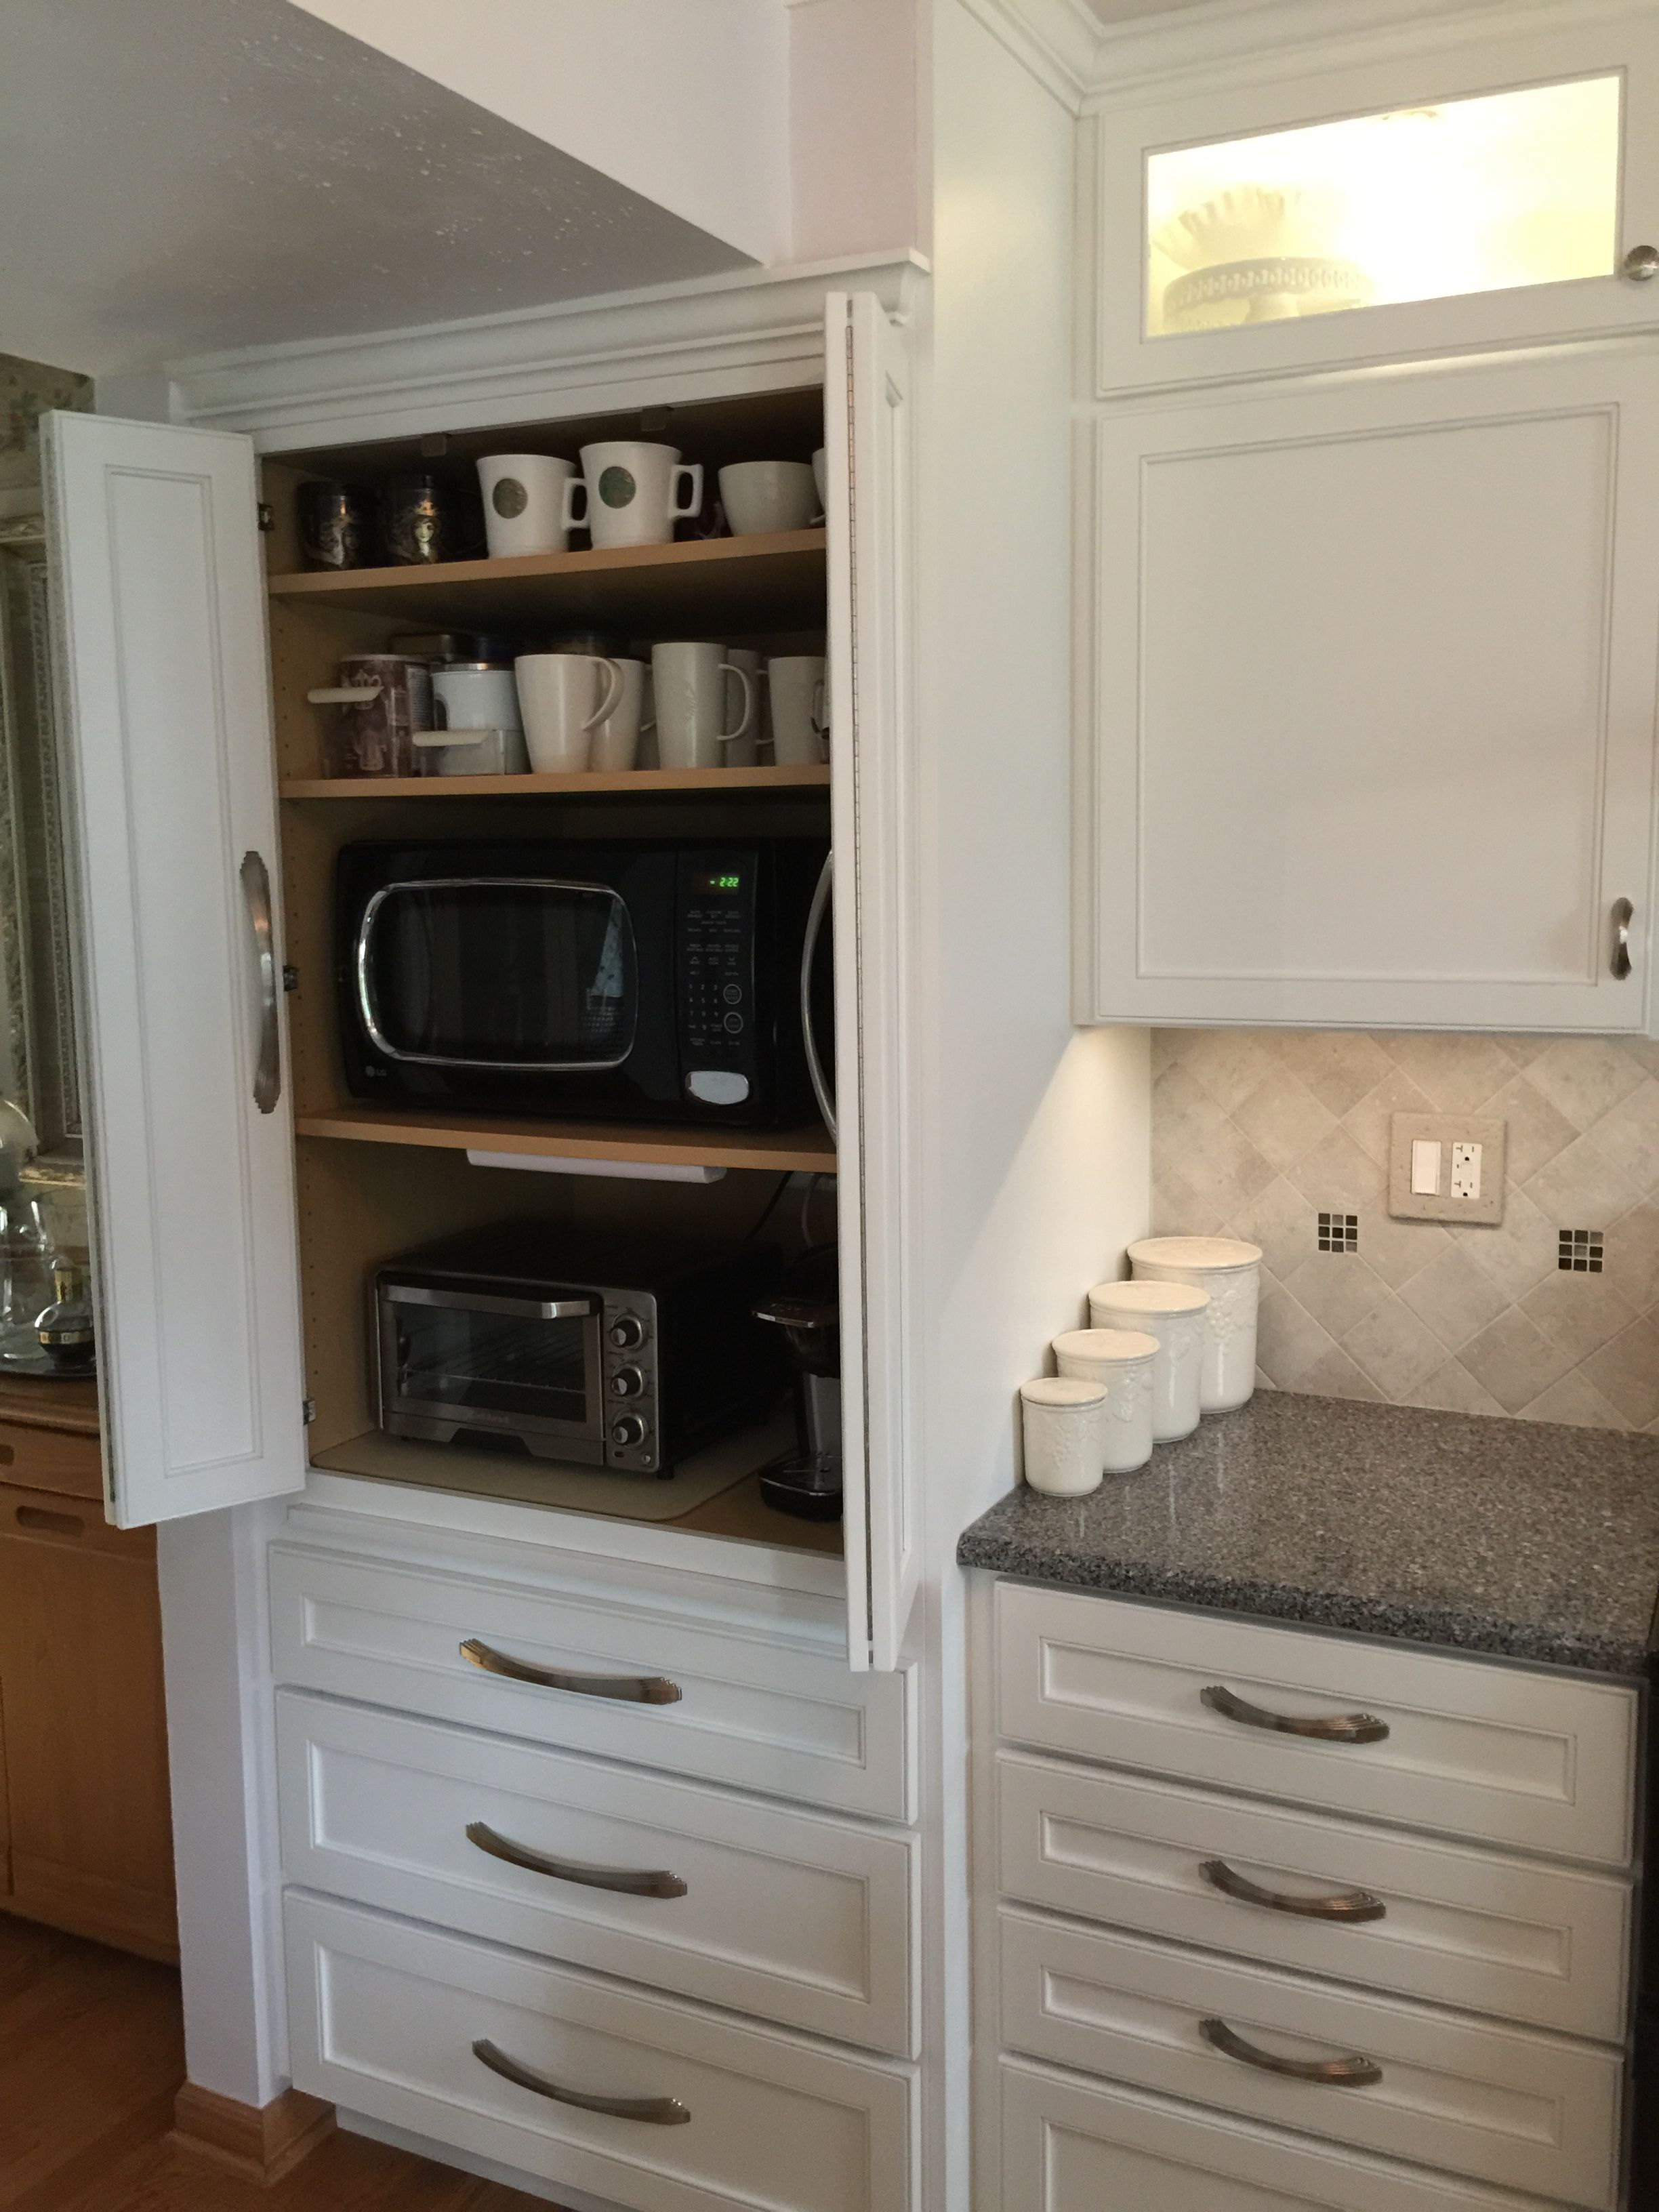 Exceptionnel Appliance Cabinet. Great To Hide Microwave, Toaster Oven, Coffee Maker.